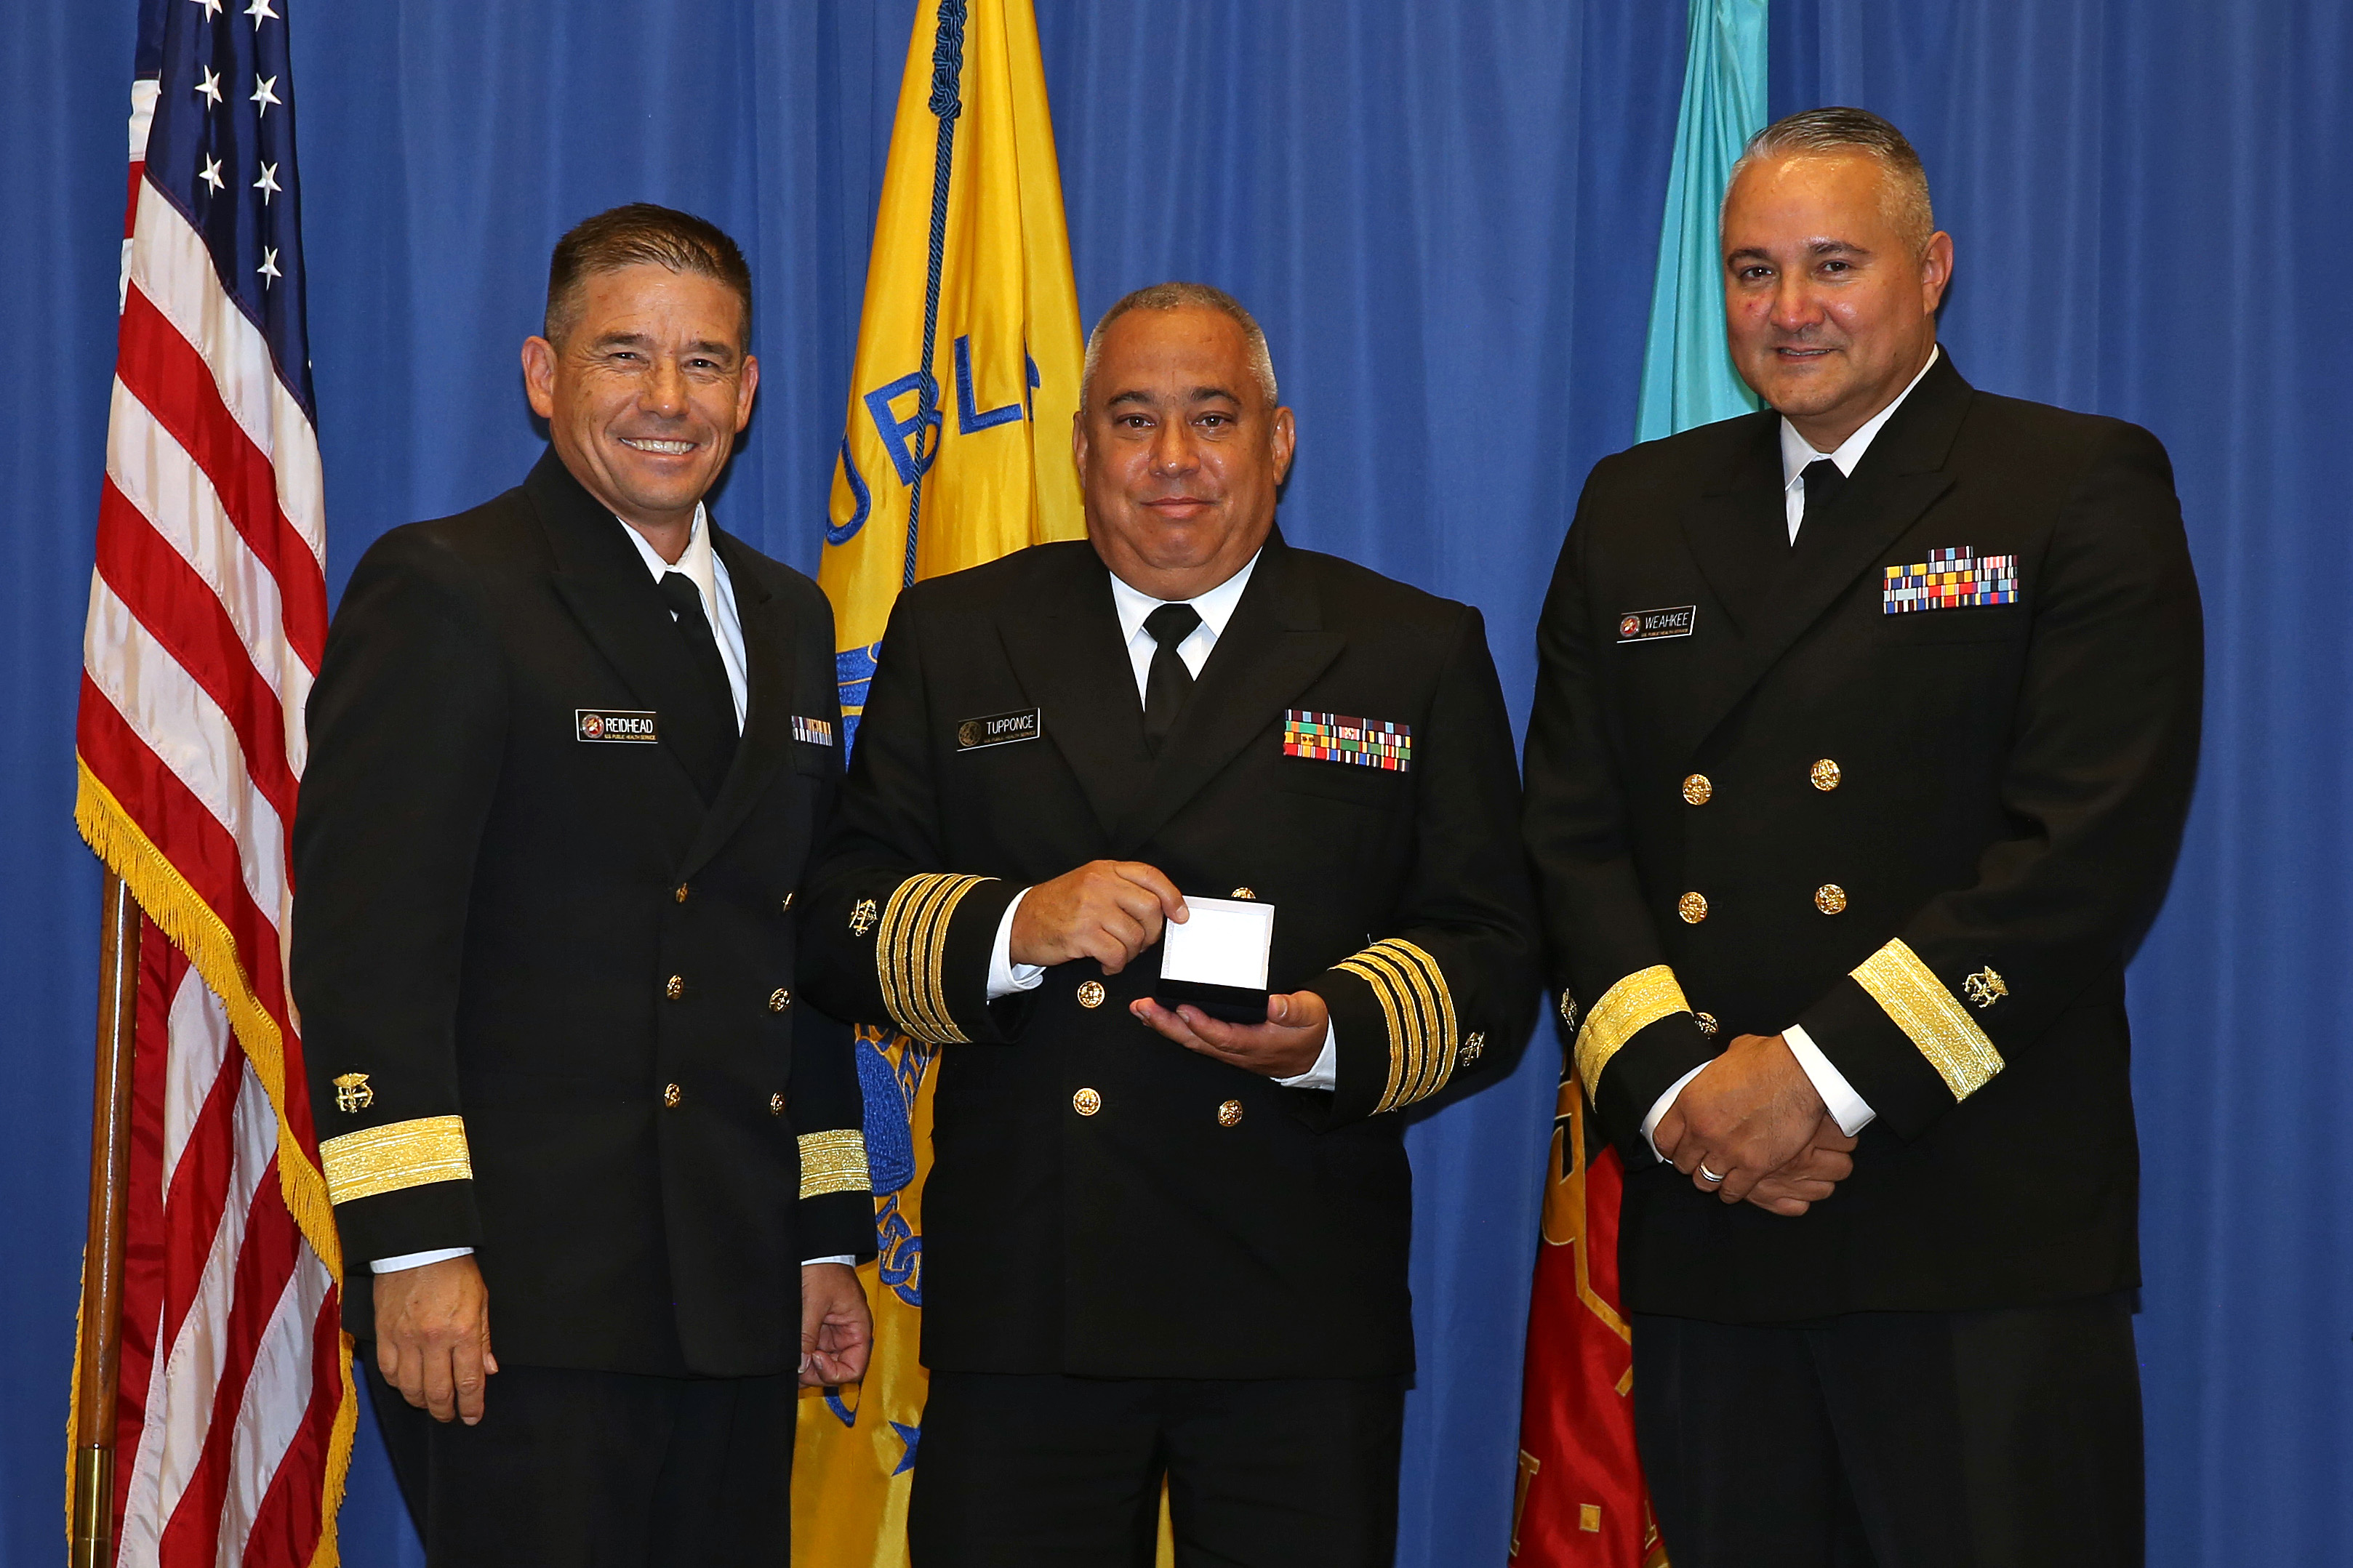 Commissioned Corps Outstanding Service Medal - CDR Alan Tupponce (Phoenix)